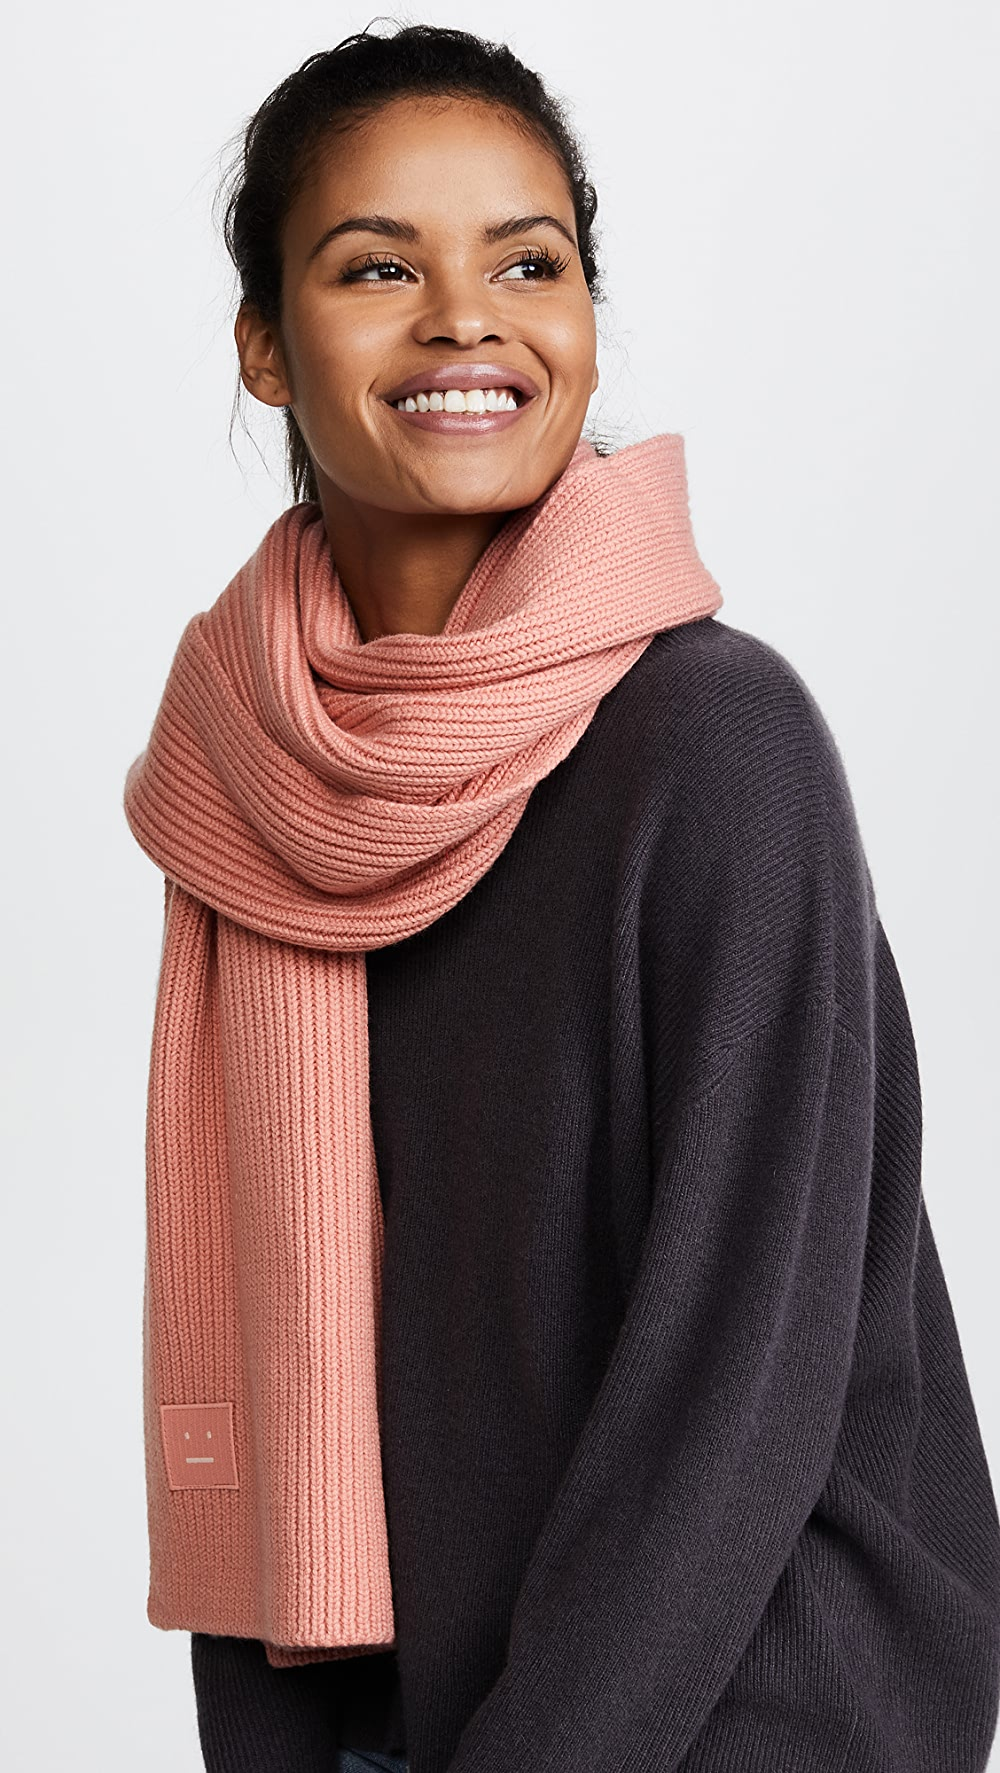 Aggressive Acne Studios - Bansy S Face Scarf Great Varieties